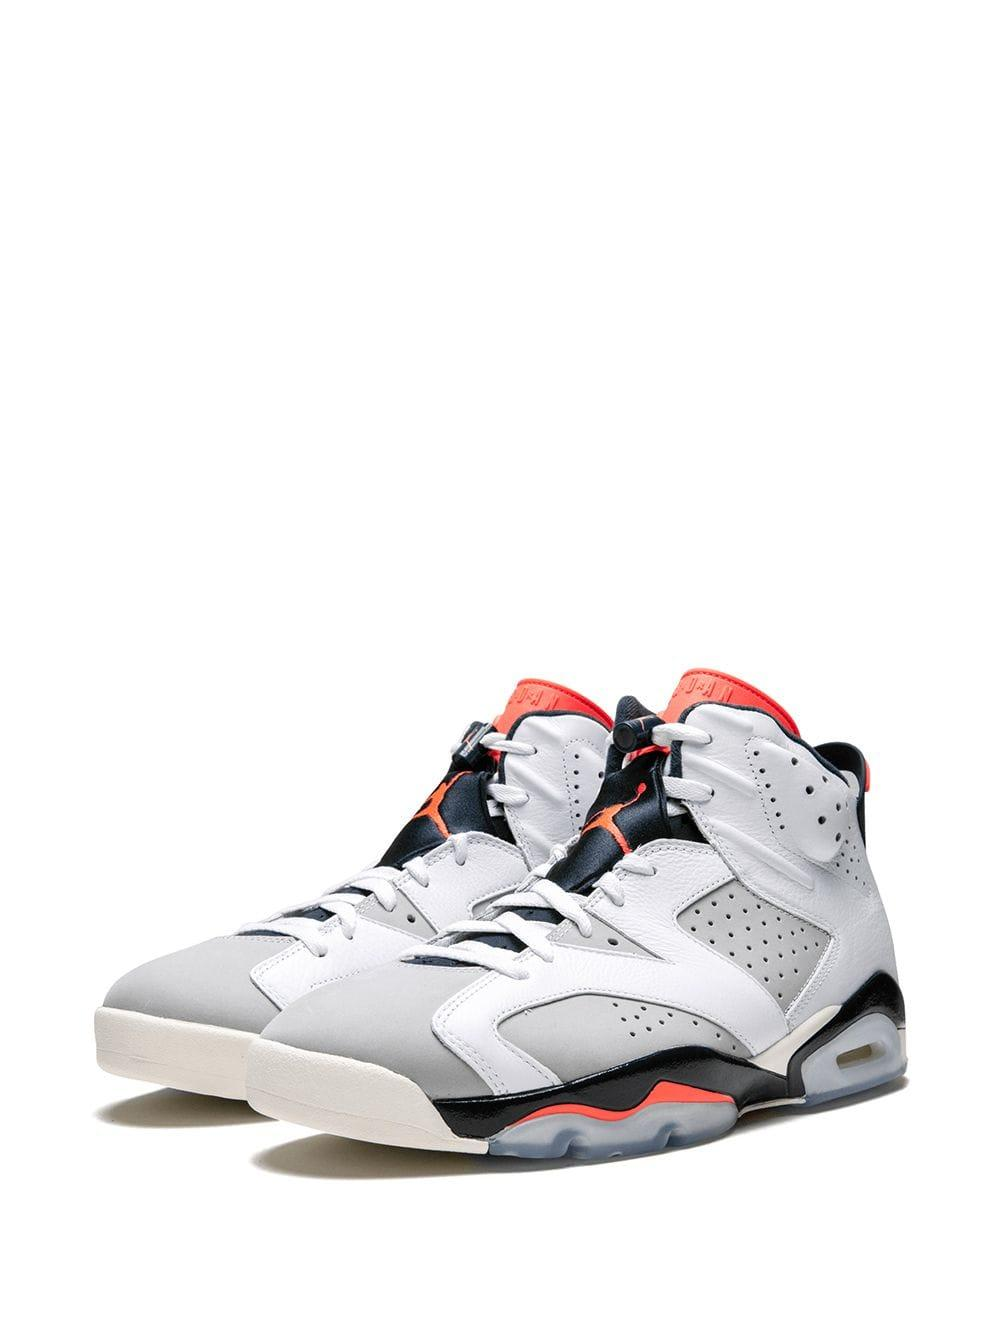 new product 0fb24 ae109 Nike Air 6 Retro Sneakers in Gray for Men - Lyst